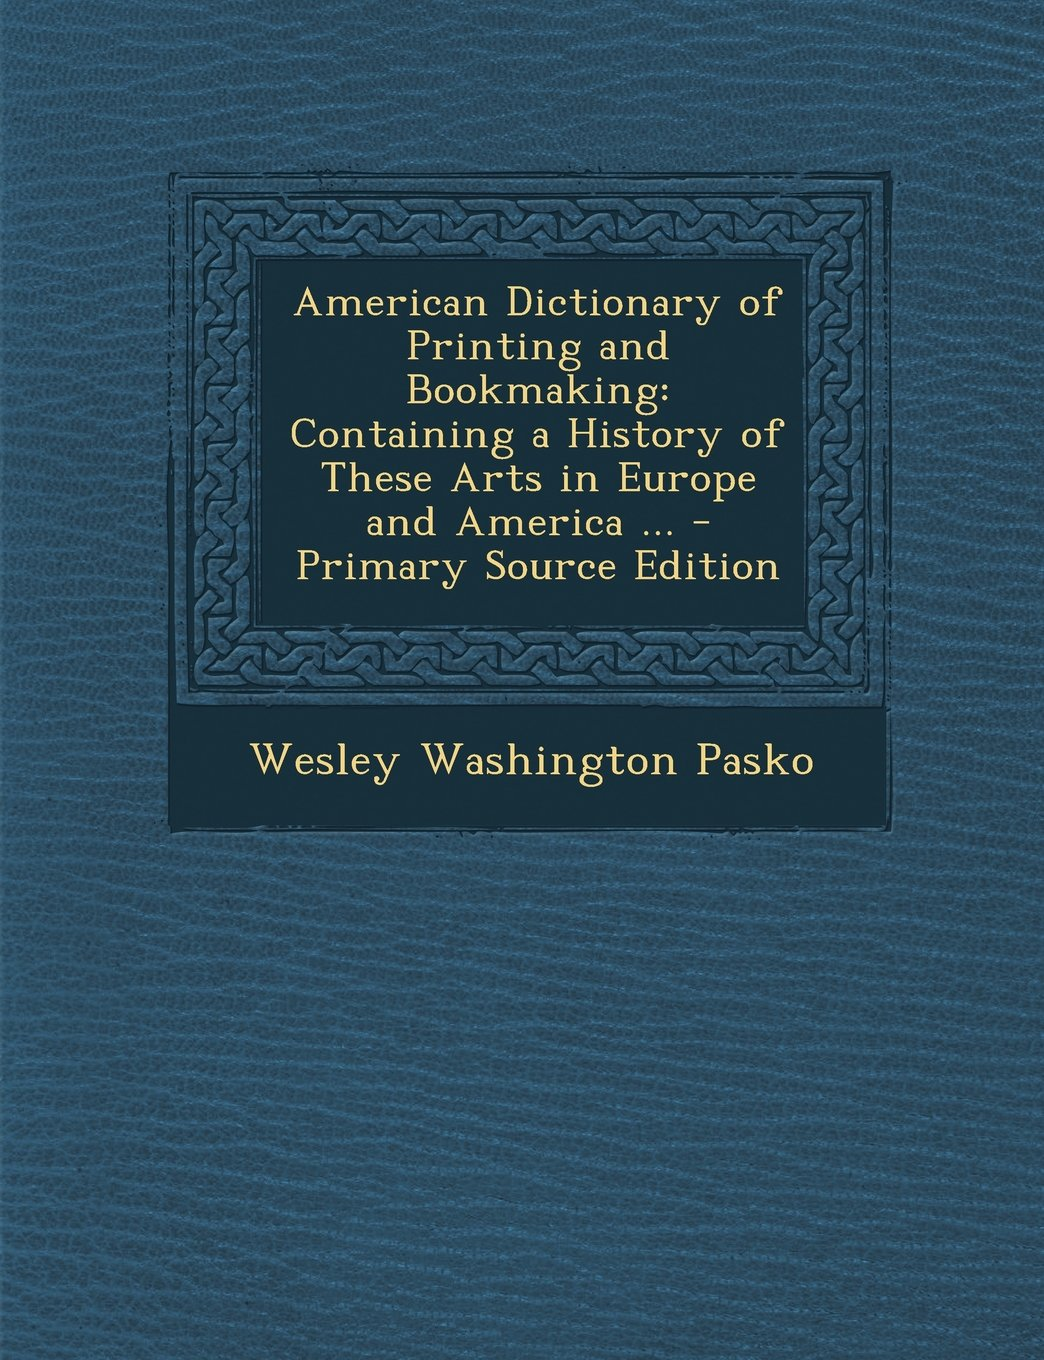 American Dictionary of Printing and Bookmaking: Containing a History of These Arts in Europe and America ... - Primary Source Edition ebook